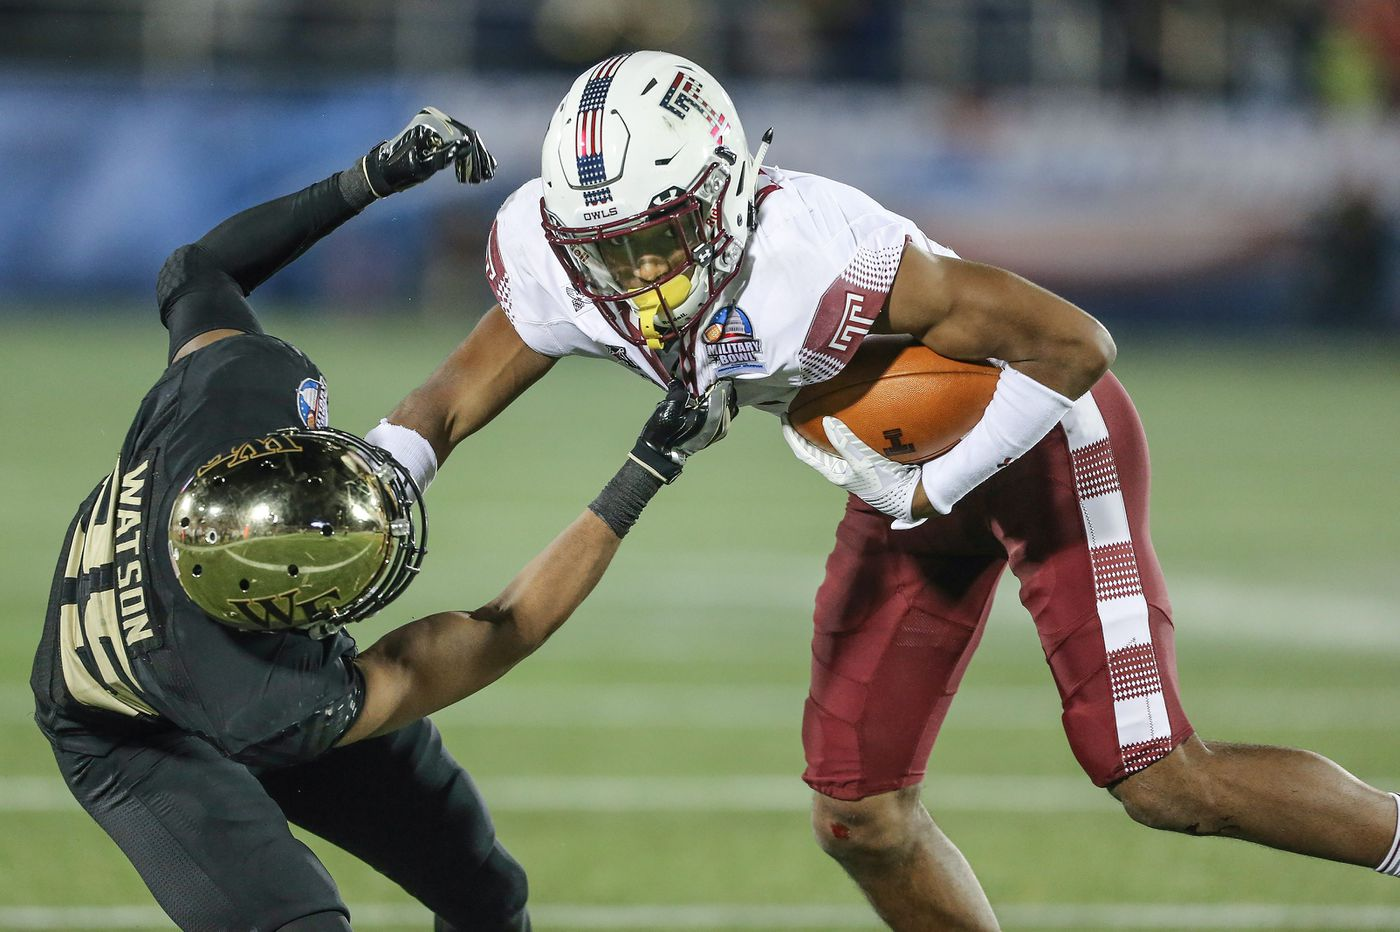 Temple's Ventell Bryant, coming back strong, earns single-digit jersey